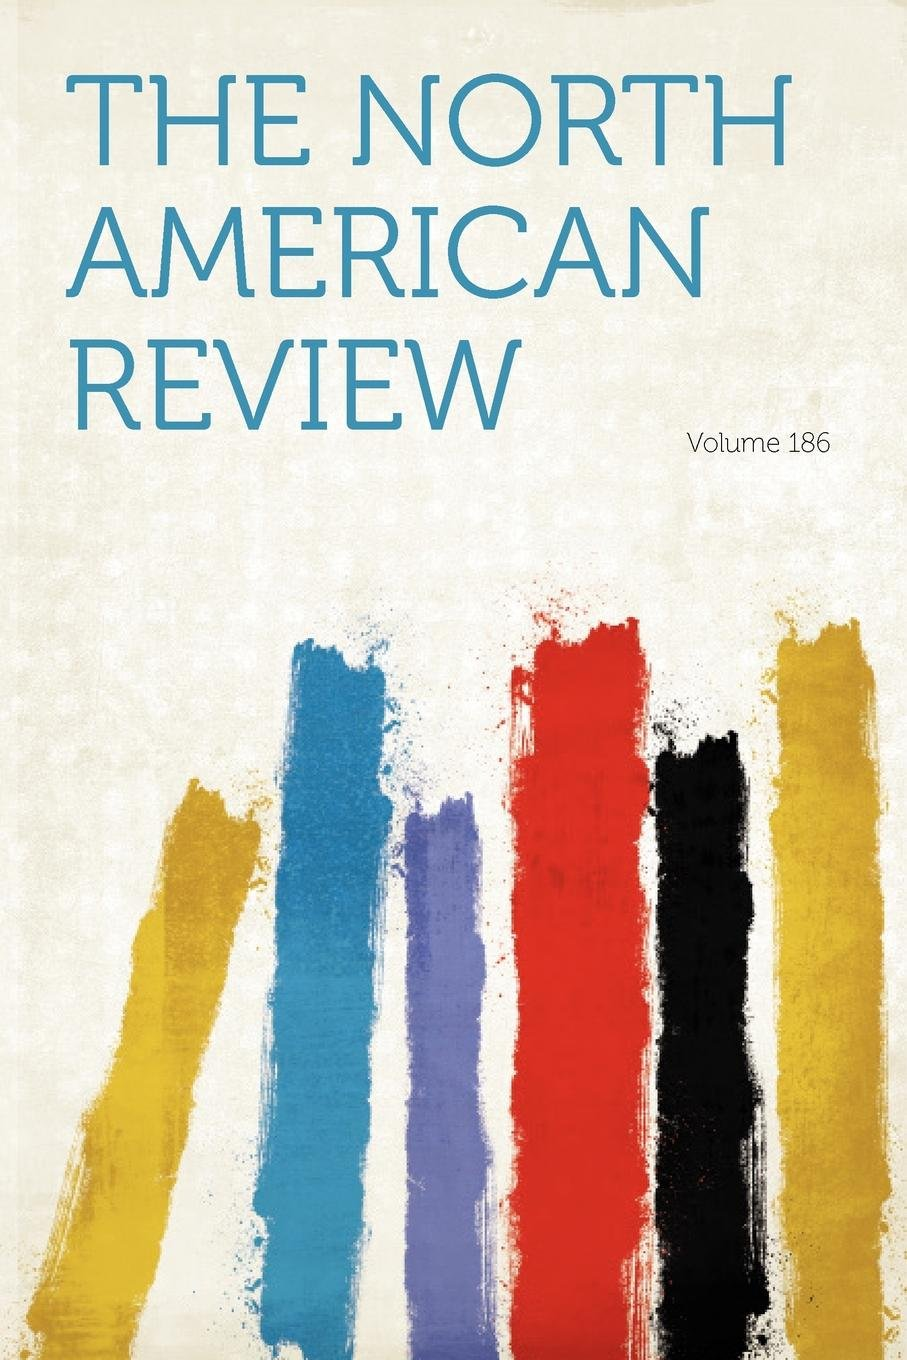 The North American Review Volume 186 pdf